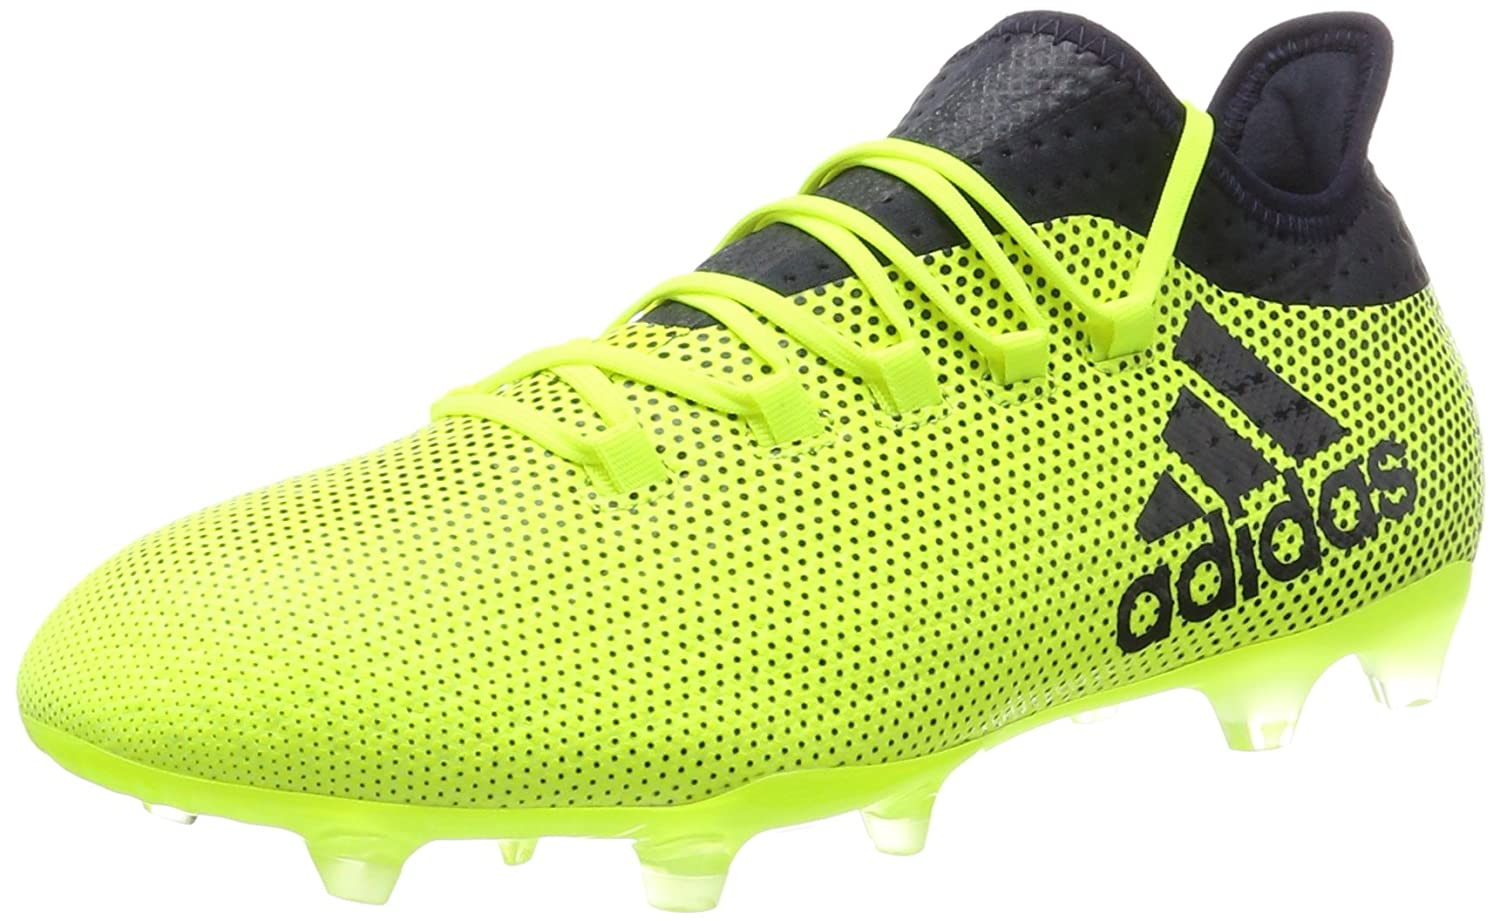 4356f0b4b Amazon.com | adidas Men Soccer Shoes Cleats X 17.2 Firm Ground Football  Boots | Soccer